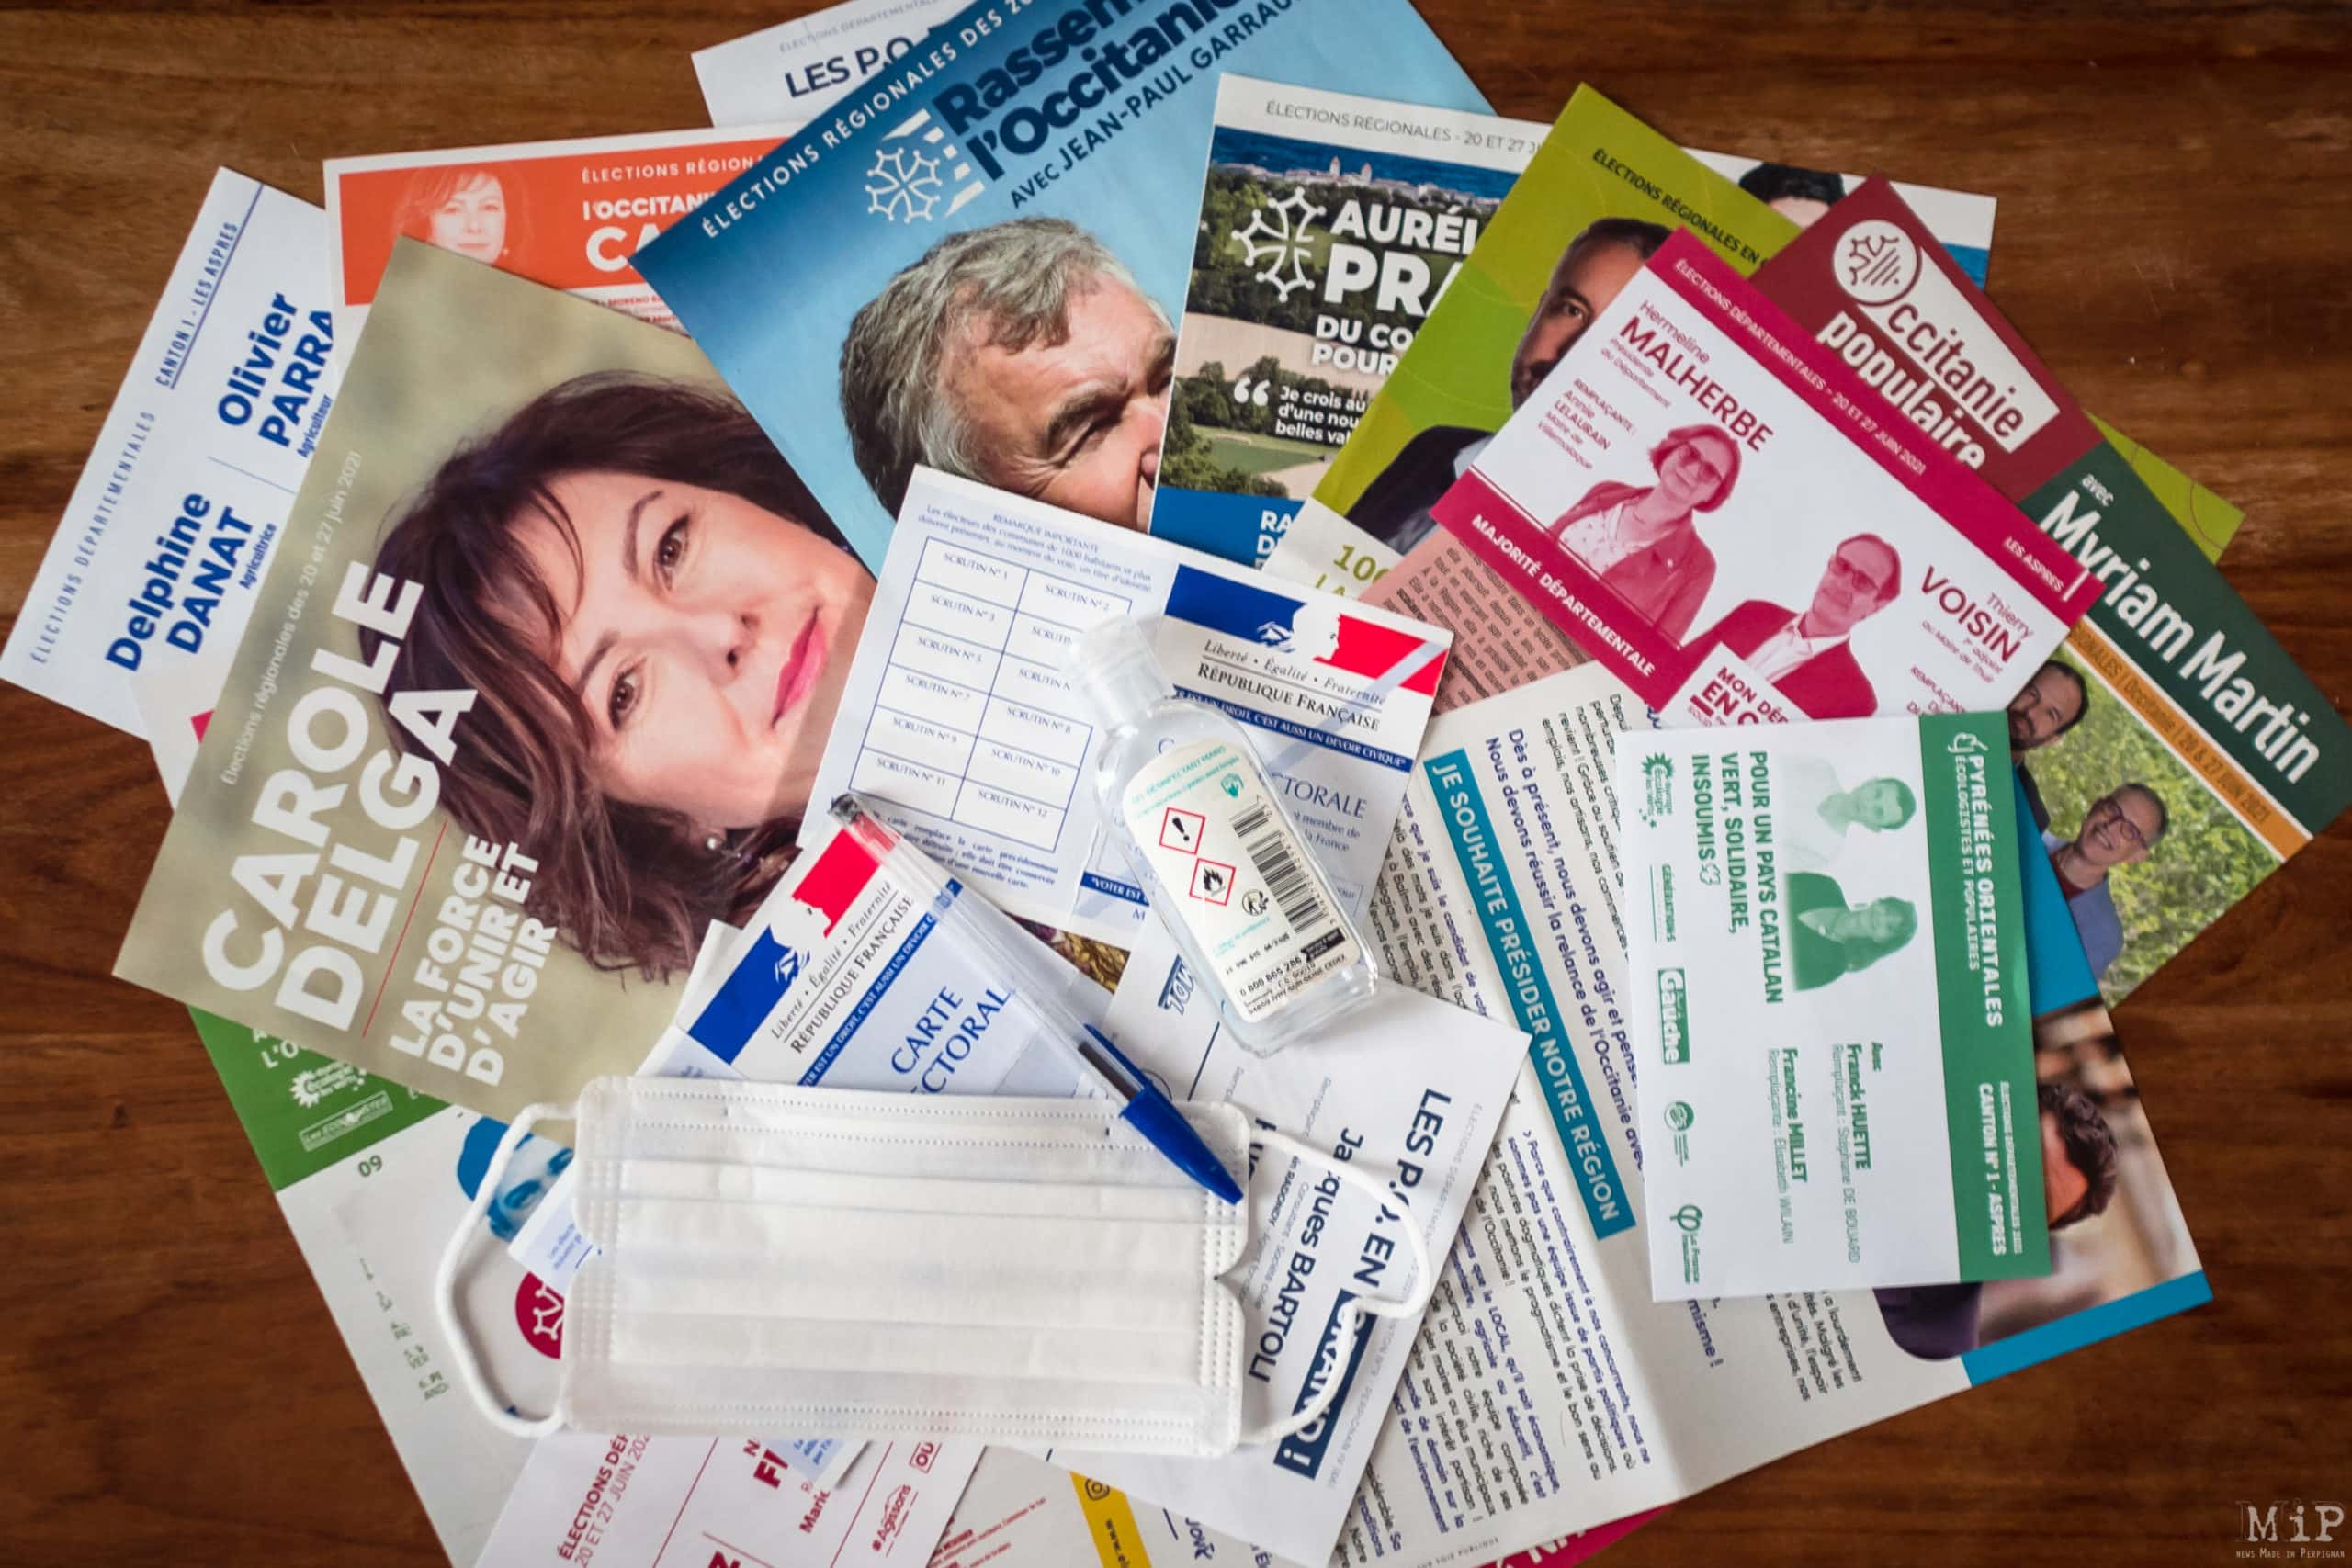 France, Perpignan, 2021-06-18. Illustration, Mixture of propaganda leaflets from candidates for the regional elections in Occitania, and departmental elections in Pyrenees-Orientales, with a mask and voters cards. Photograph by Arnaud Le Vu / Hans Lucas.France, Perpignan, 2021-06-18. Illustration, Melange de tracts de propagande des candidats aux elections regionales en Occitanie, et elections departementales en Pyrenees-Orientales, avec un masque et des cartes d electeur. Photographie de Arnaud Le Vu / Hans Lucas.